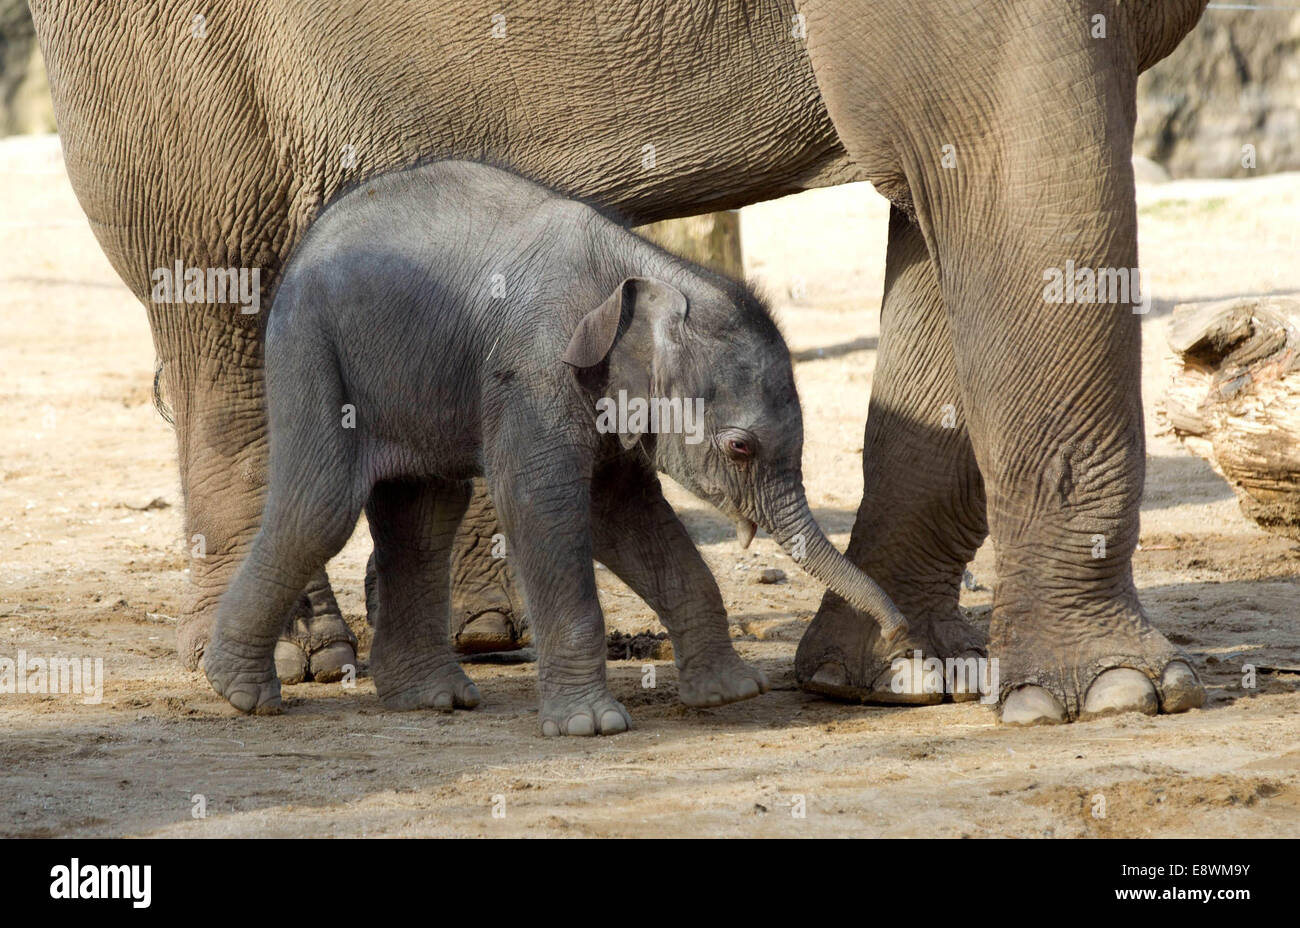 A baby Asian elephant goes on full public view at Twycross Zoo - Stock Image